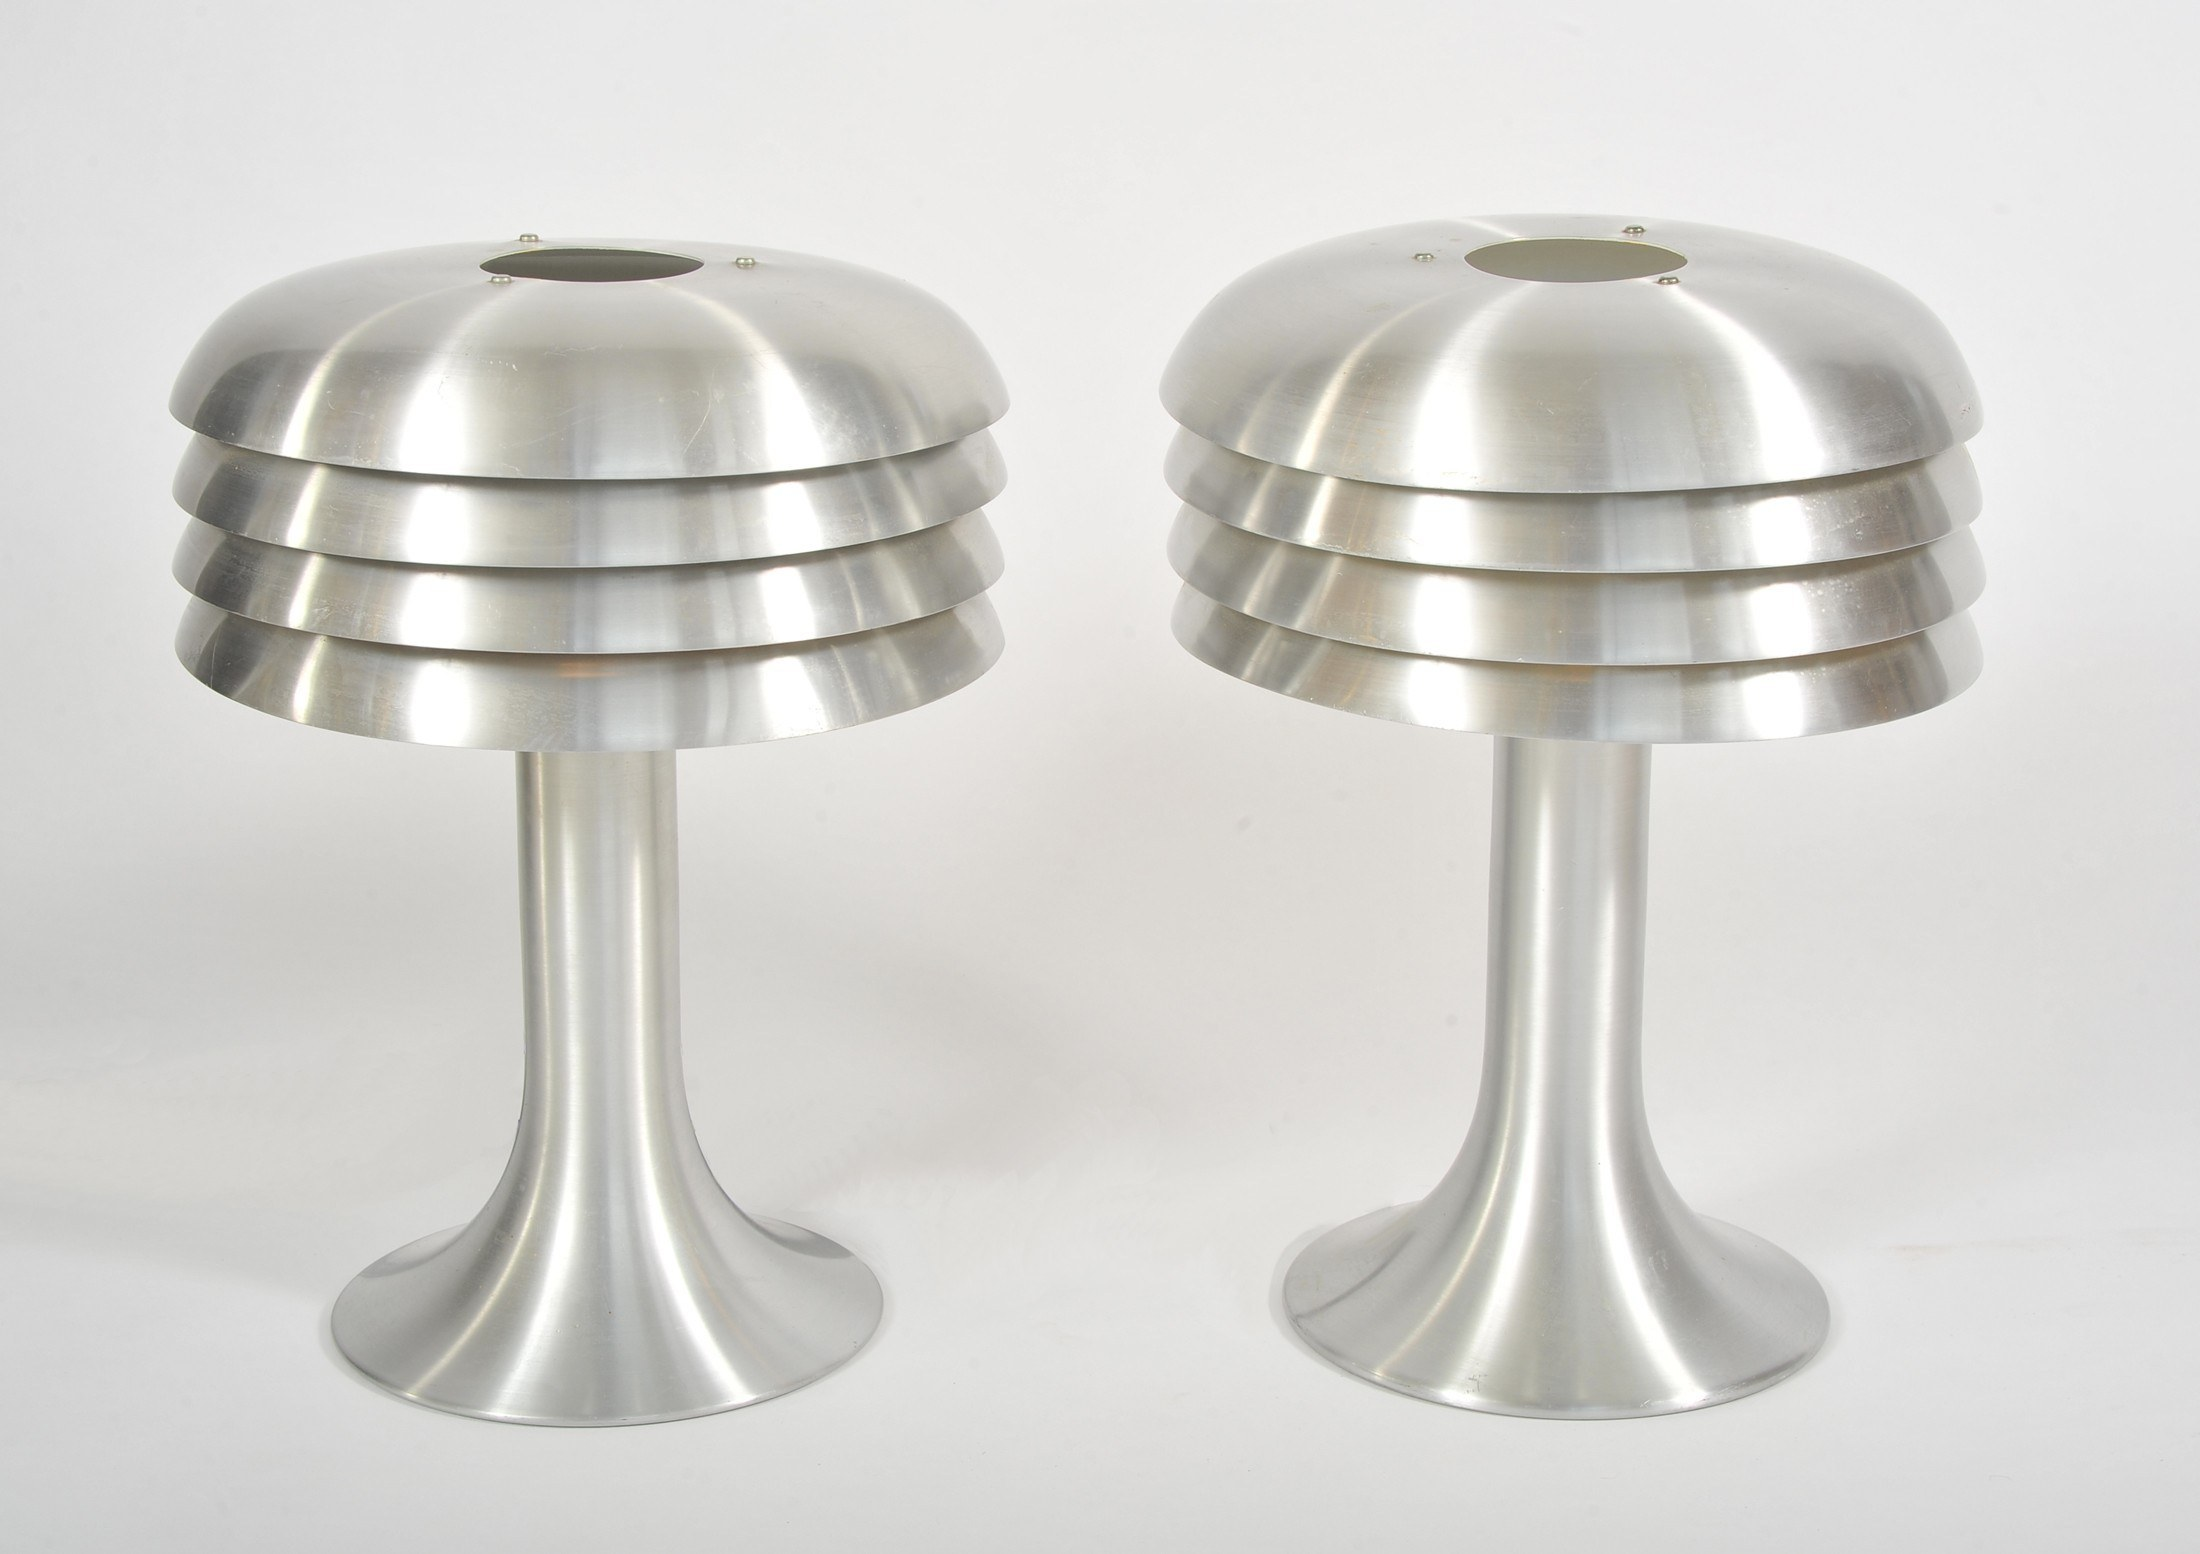 Valerie Wade Lt663 Pair 1960S Table Lamps Hans Agne Jakobsson 02